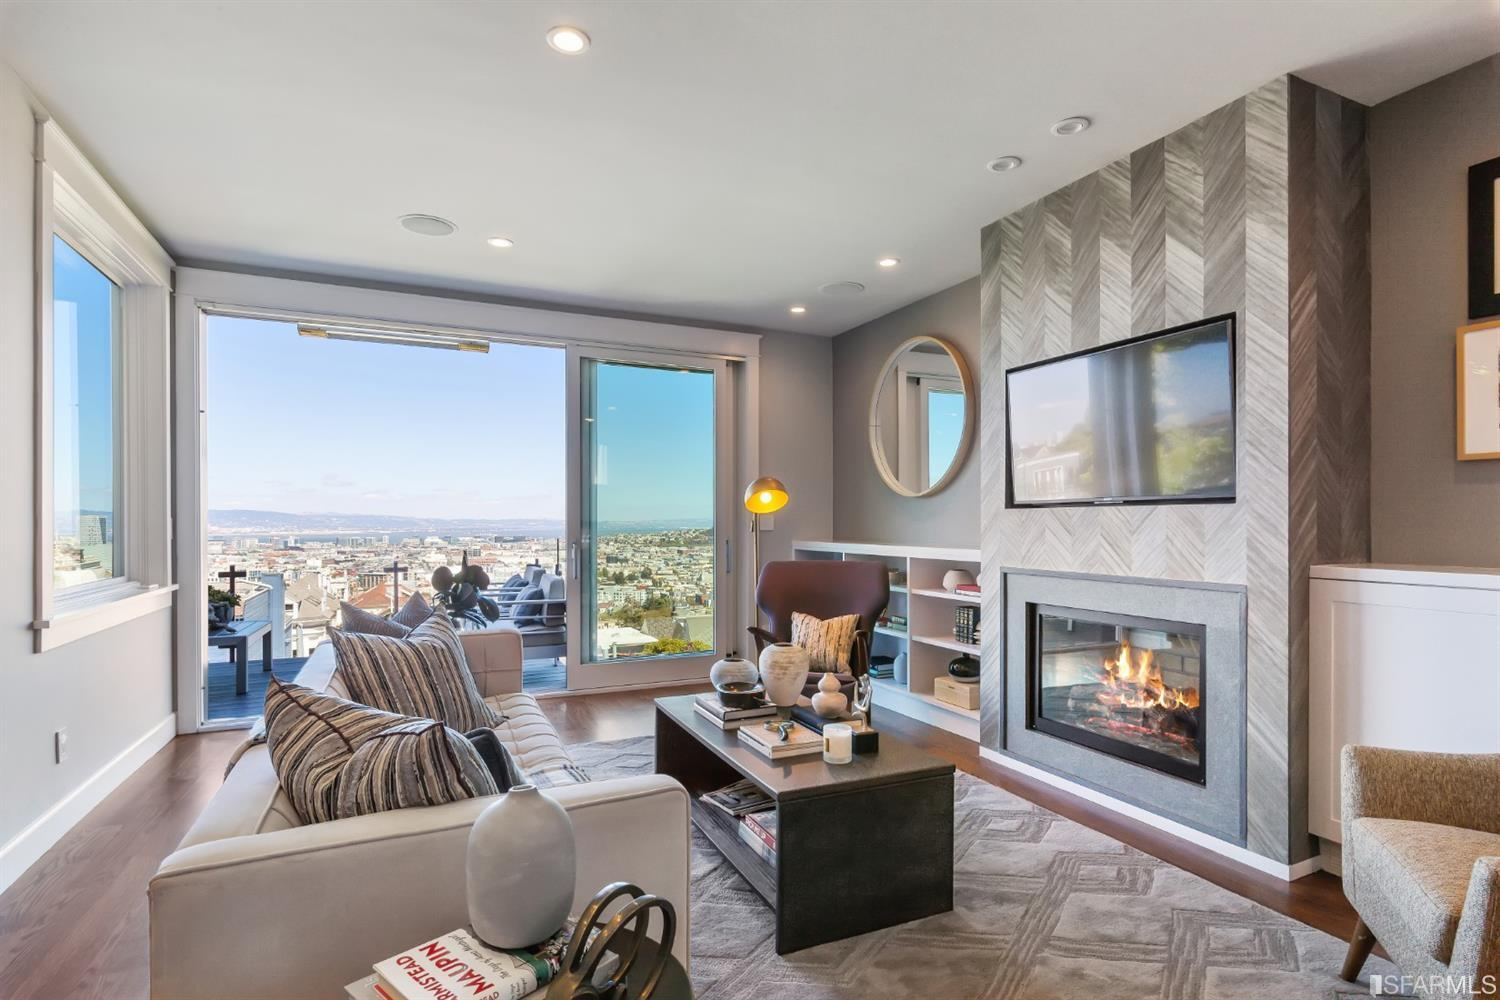 Gray and White living room overlooking the city during daytime